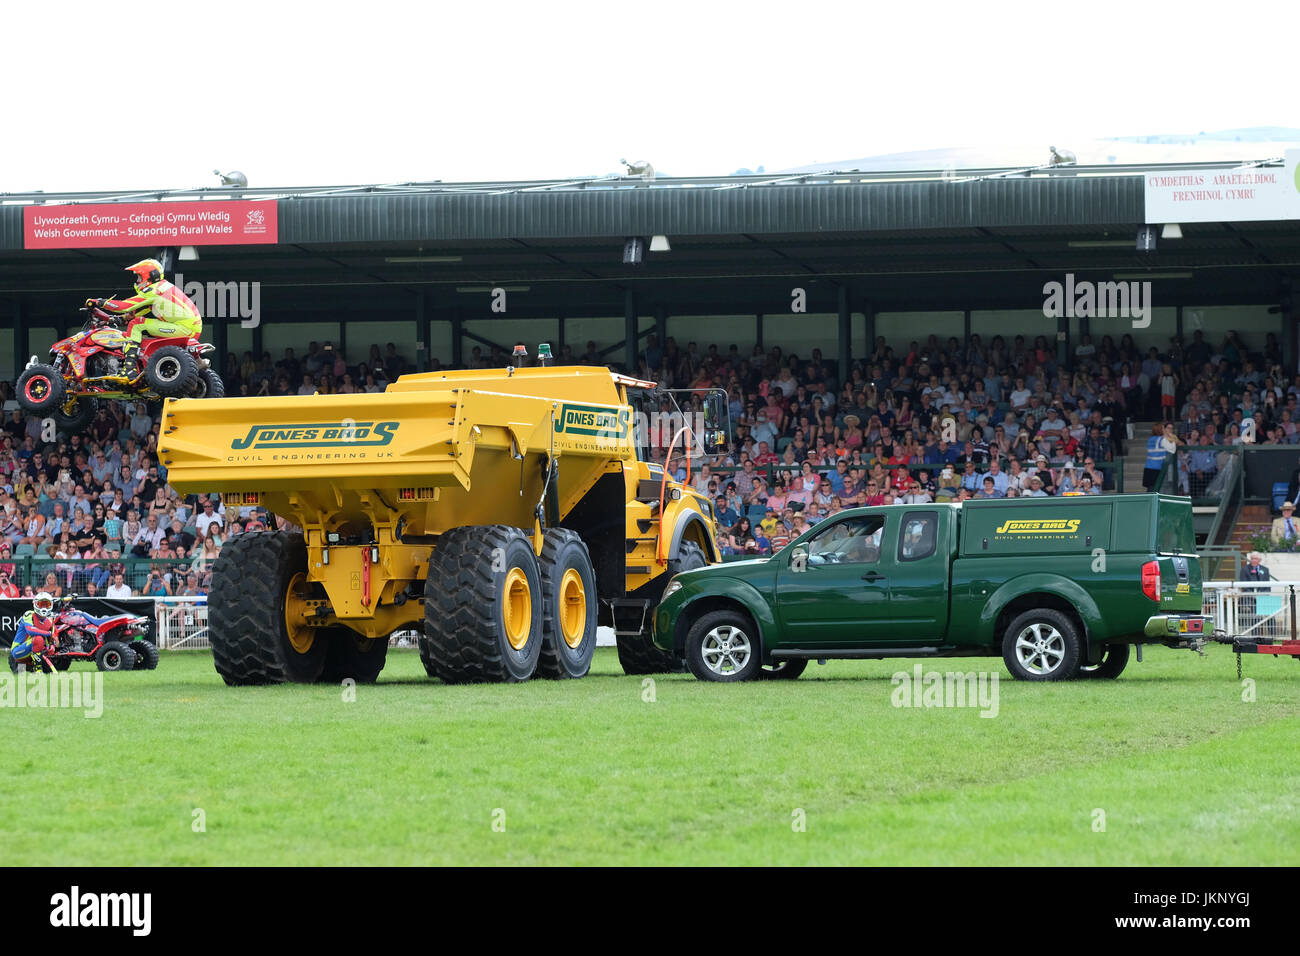 Royal Welsh Show - Monday 24th July 2017 - The Kangaroo Kid motorcycle stuntman is too low as he tries to jump a - Stock Image